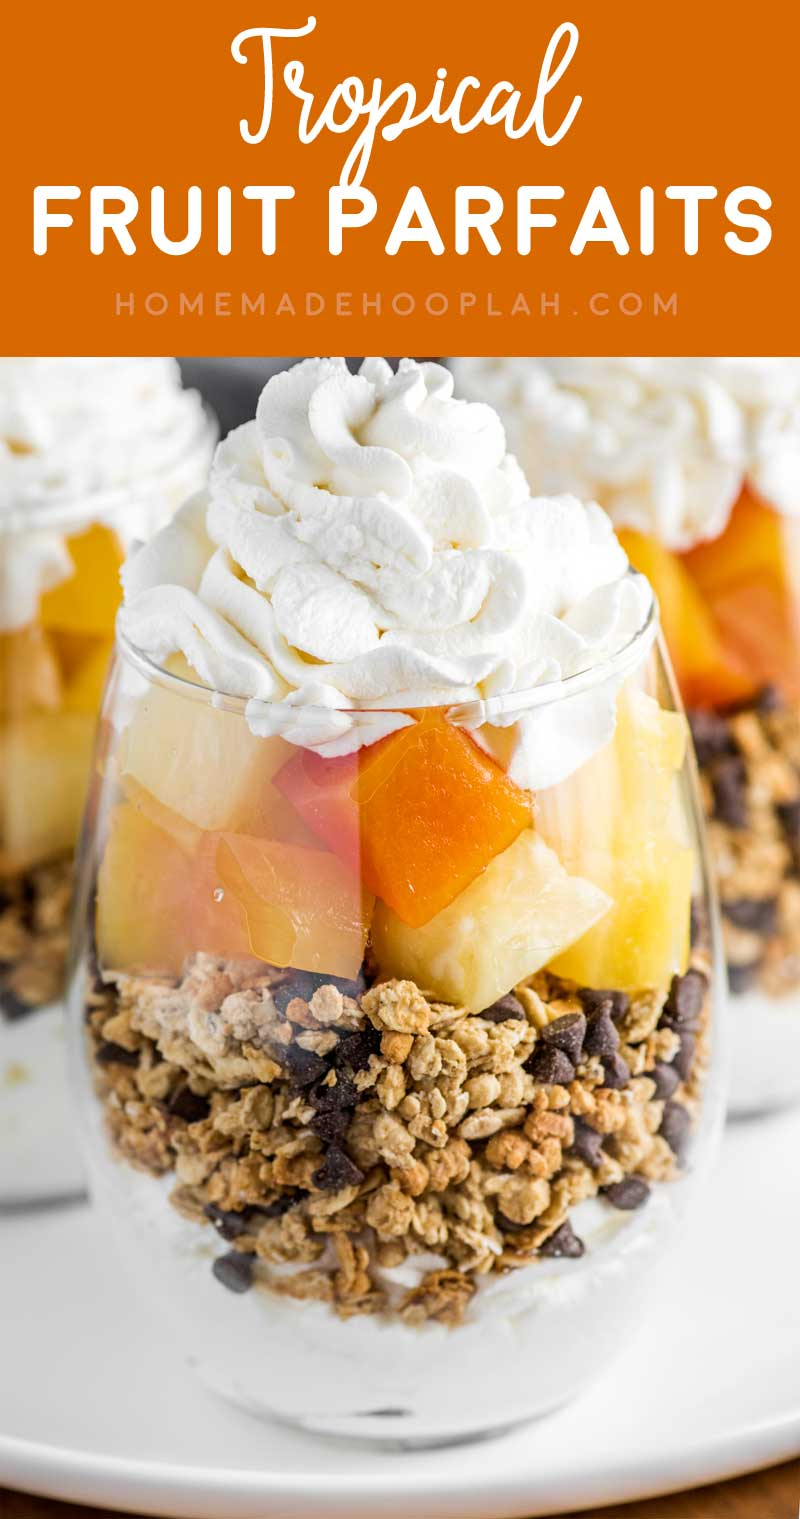 Tropical Fruit Parfaits! Decadent parfaits made with homemade whipped cream, granola, mini chocolate chips, and a tropical blend of fruit that comes together in just 15 minutes! FruitOnDemand AD @DoleSunshine   HomemadeHooplah.com